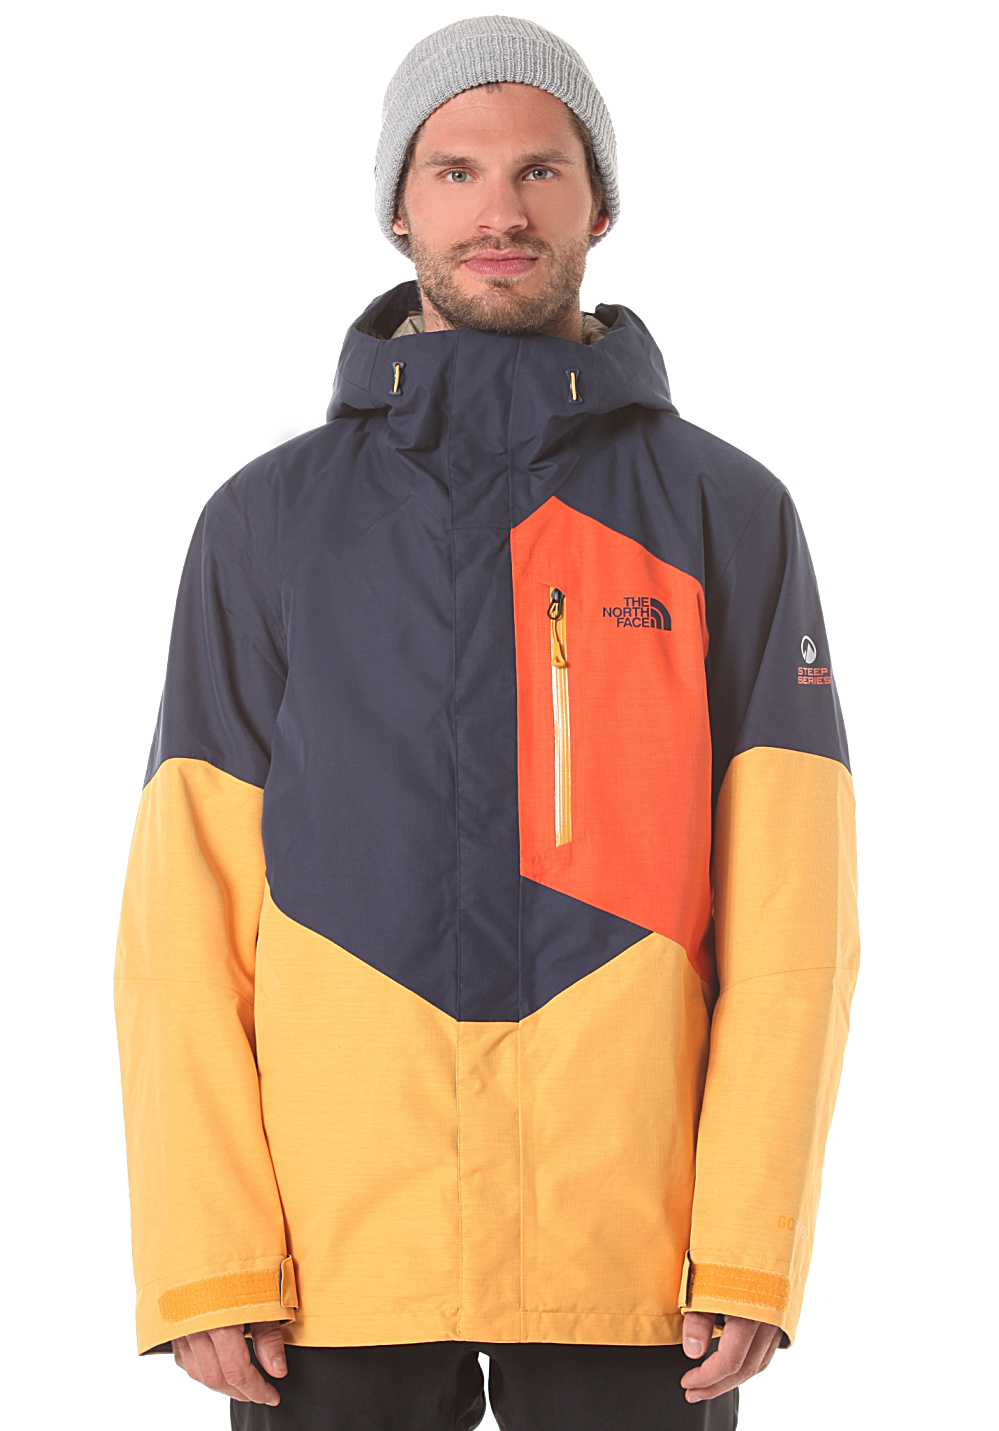 8657735ce THE NORTH FACE NFZ Insulated - Snowboard Jacket for Men - Multicolor